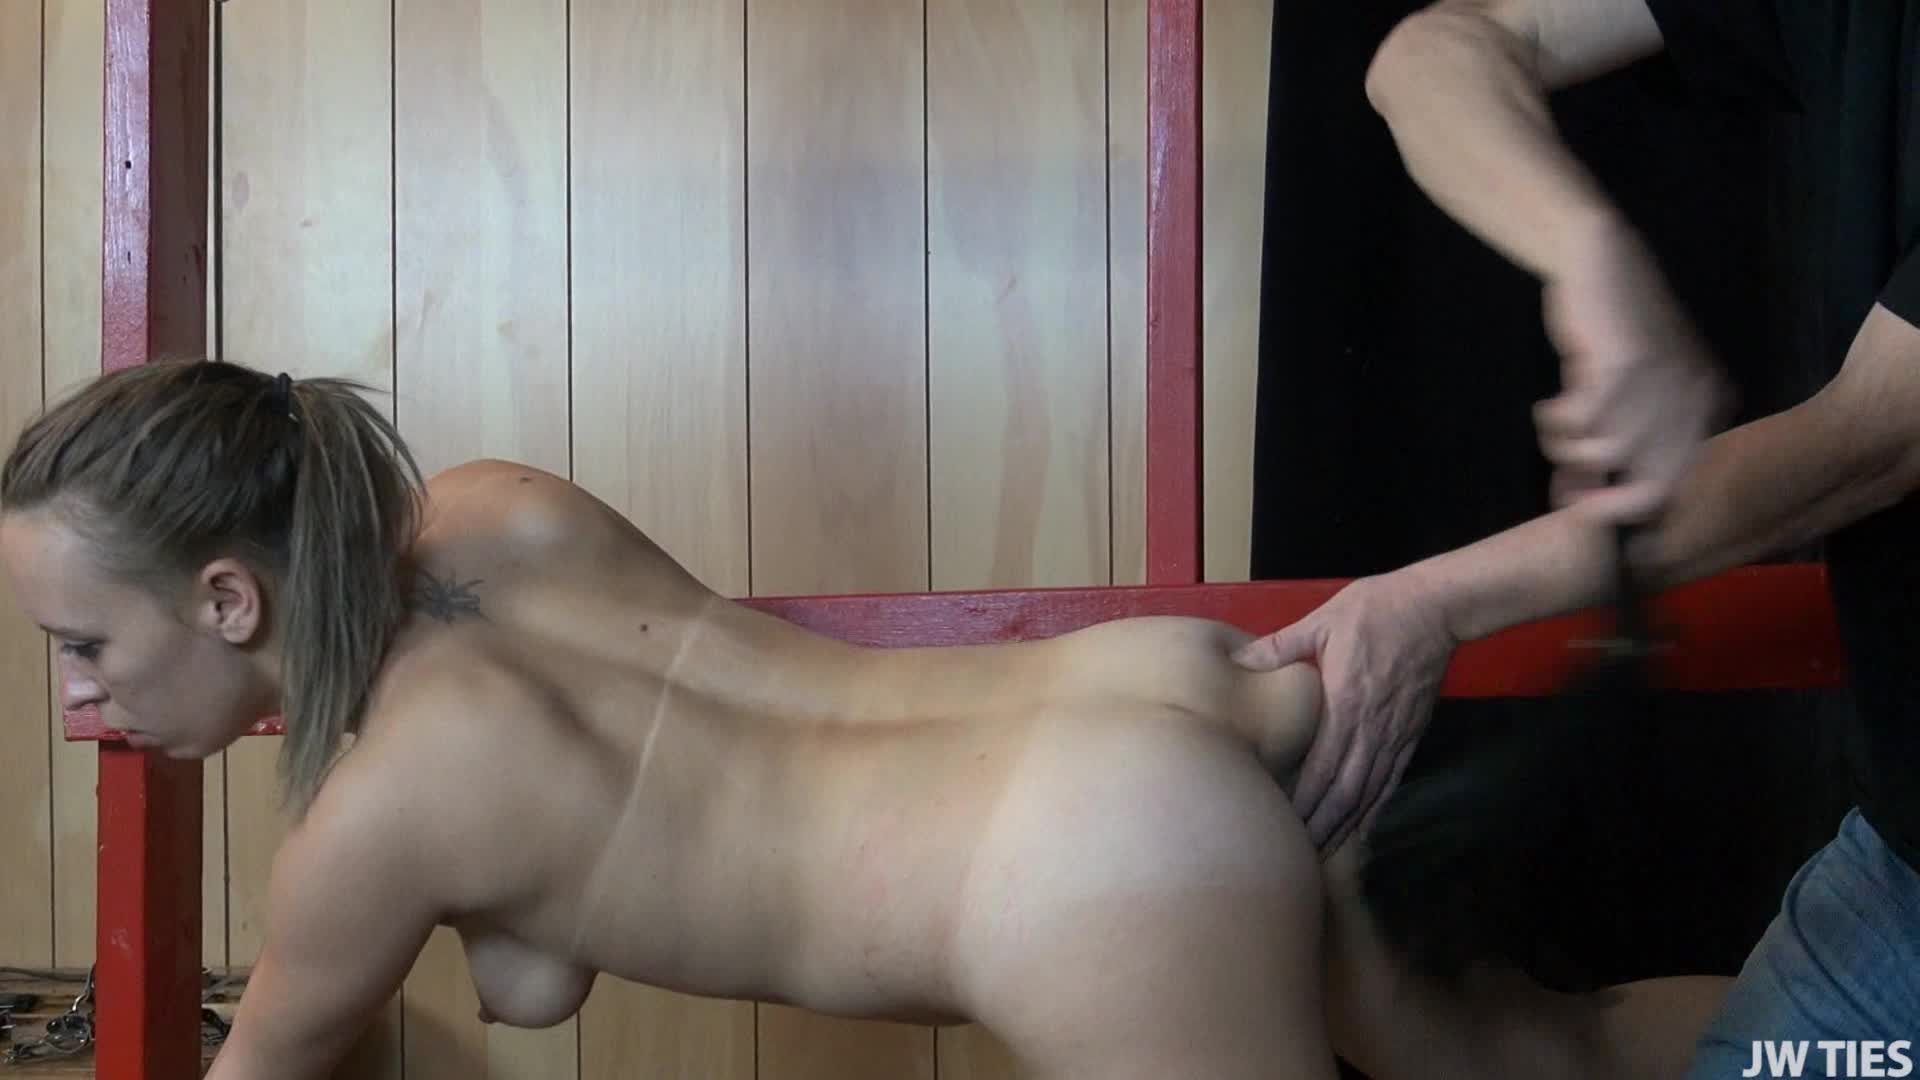 DesperatePleasures69'd vid